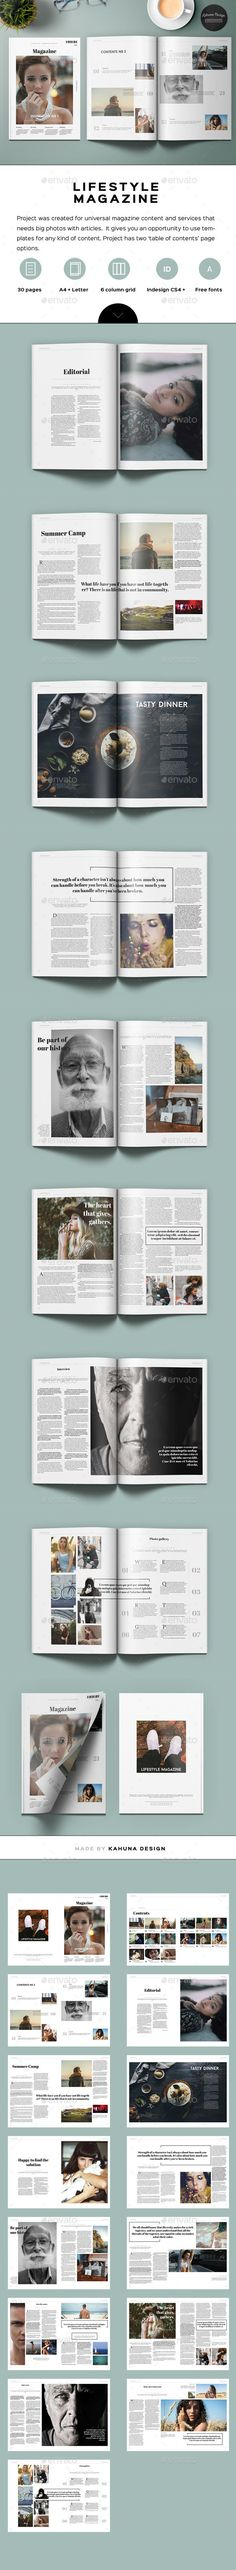 Lifestyle Universal Magazine Template InDesign INDD. Download here: http://graphicriver.net/item/lifestyle-universal-magazine/14878763?ref=ksioks